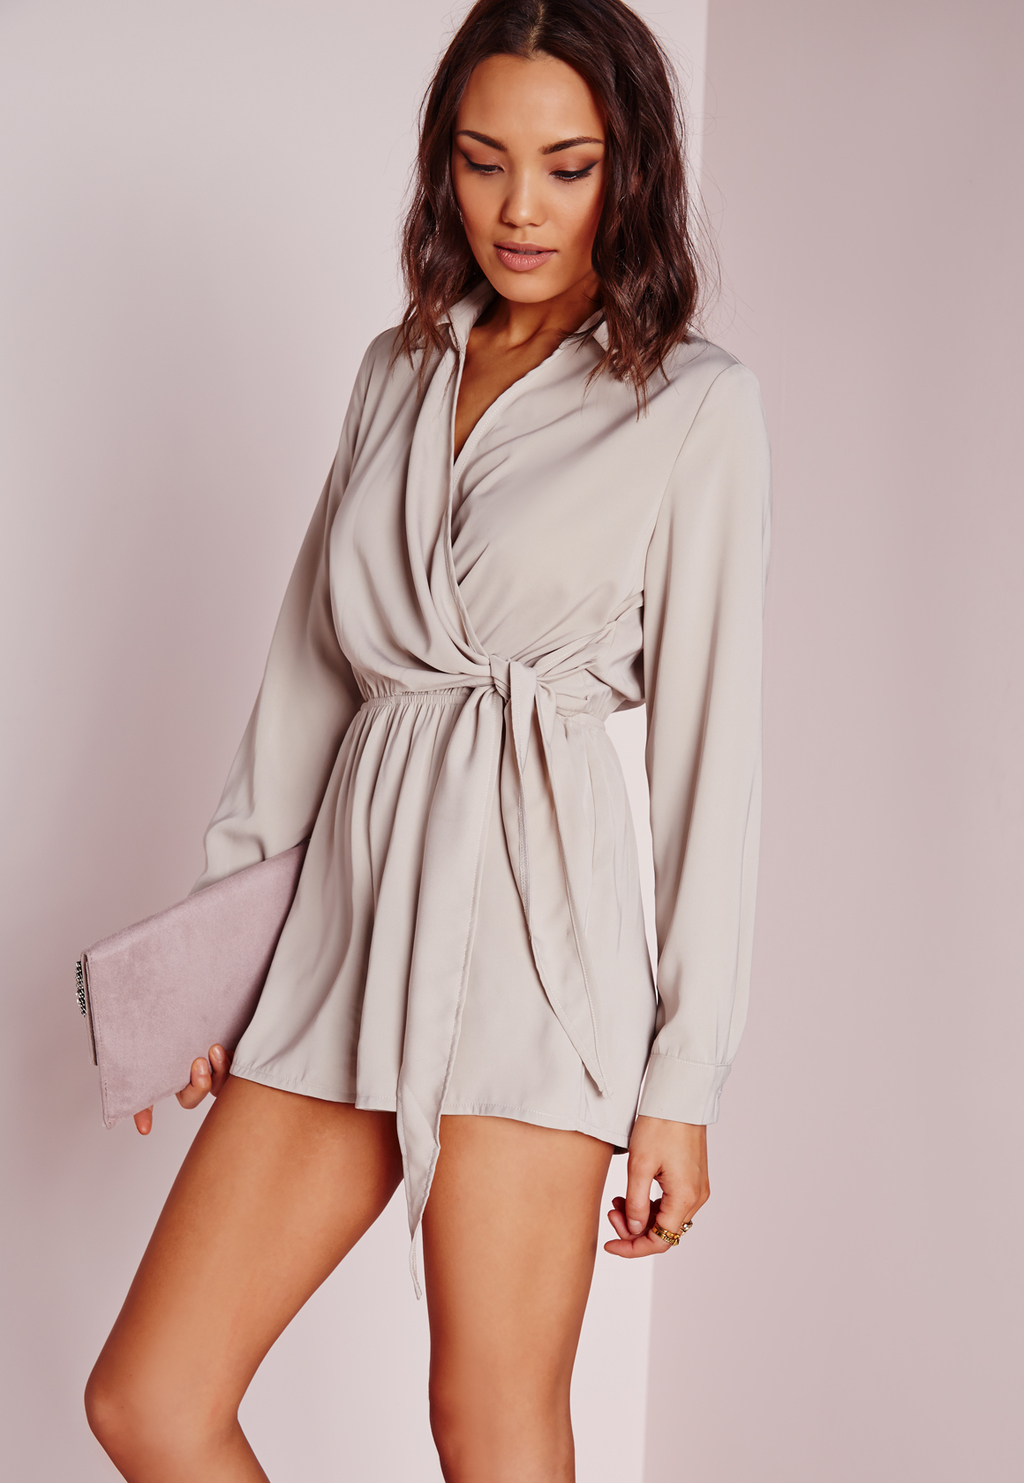 Wrap Front Shirt Playsuit Stone, Beige - neckline: v-neck; pattern: plain; waist detail: belted waist/tie at waist/drawstring; length: short shorts; predominant colour: stone; occasions: casual; fit: body skimming; fibres: polyester/polyamide - 100%; sleeve length: long sleeve; sleeve style: standard; style: playsuit; pattern type: fabric; texture group: other - light to midweight; season: s/s 2016; wardrobe: highlight